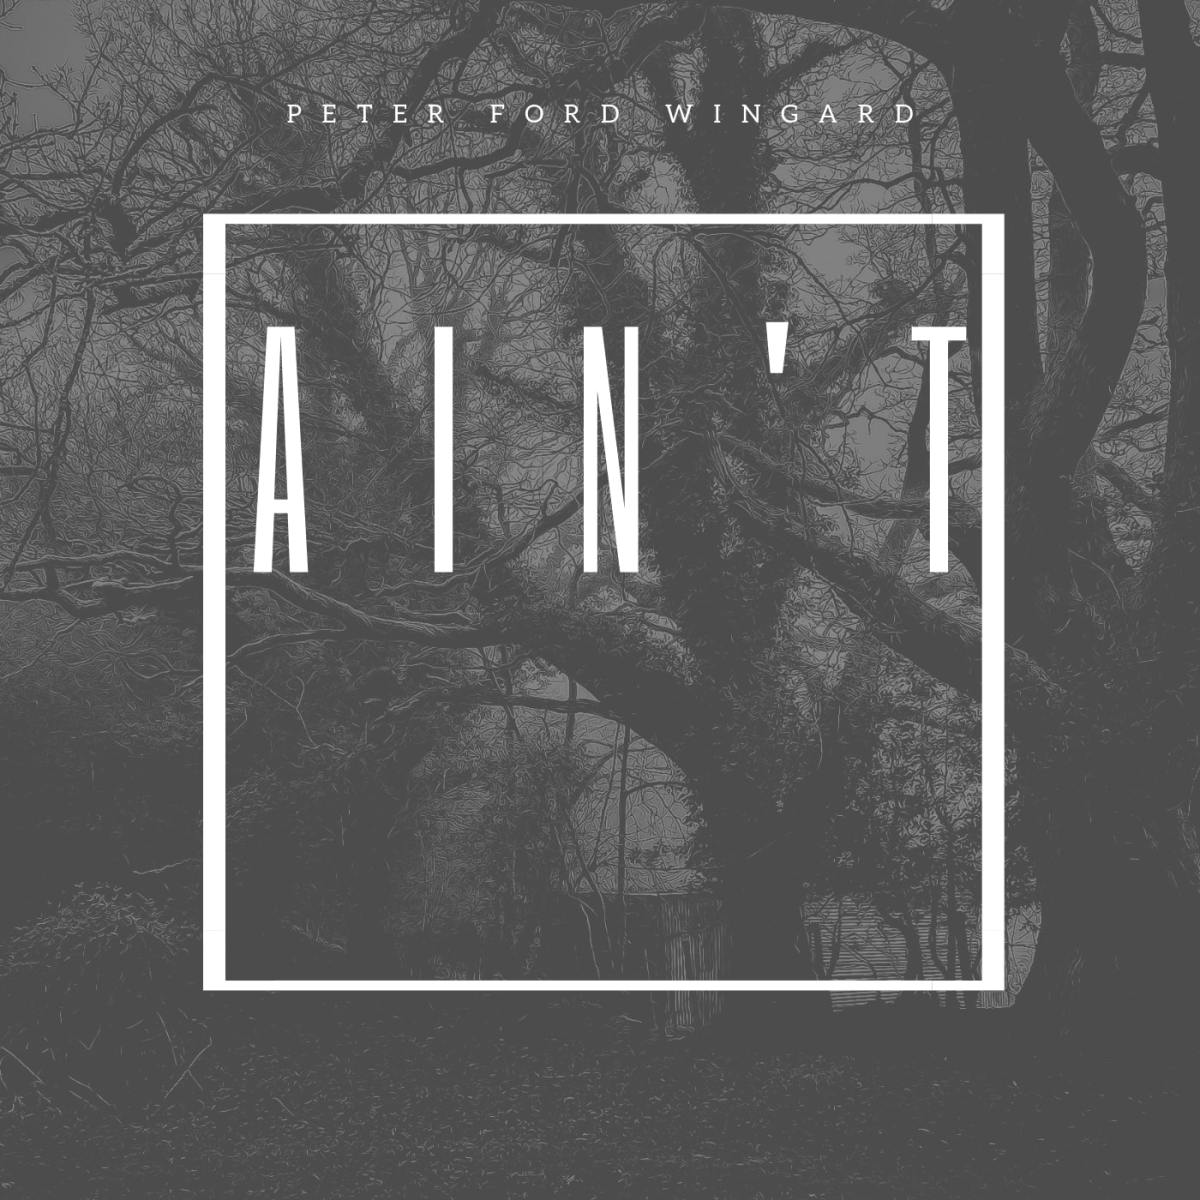 Ain't EP Peter FordWingard